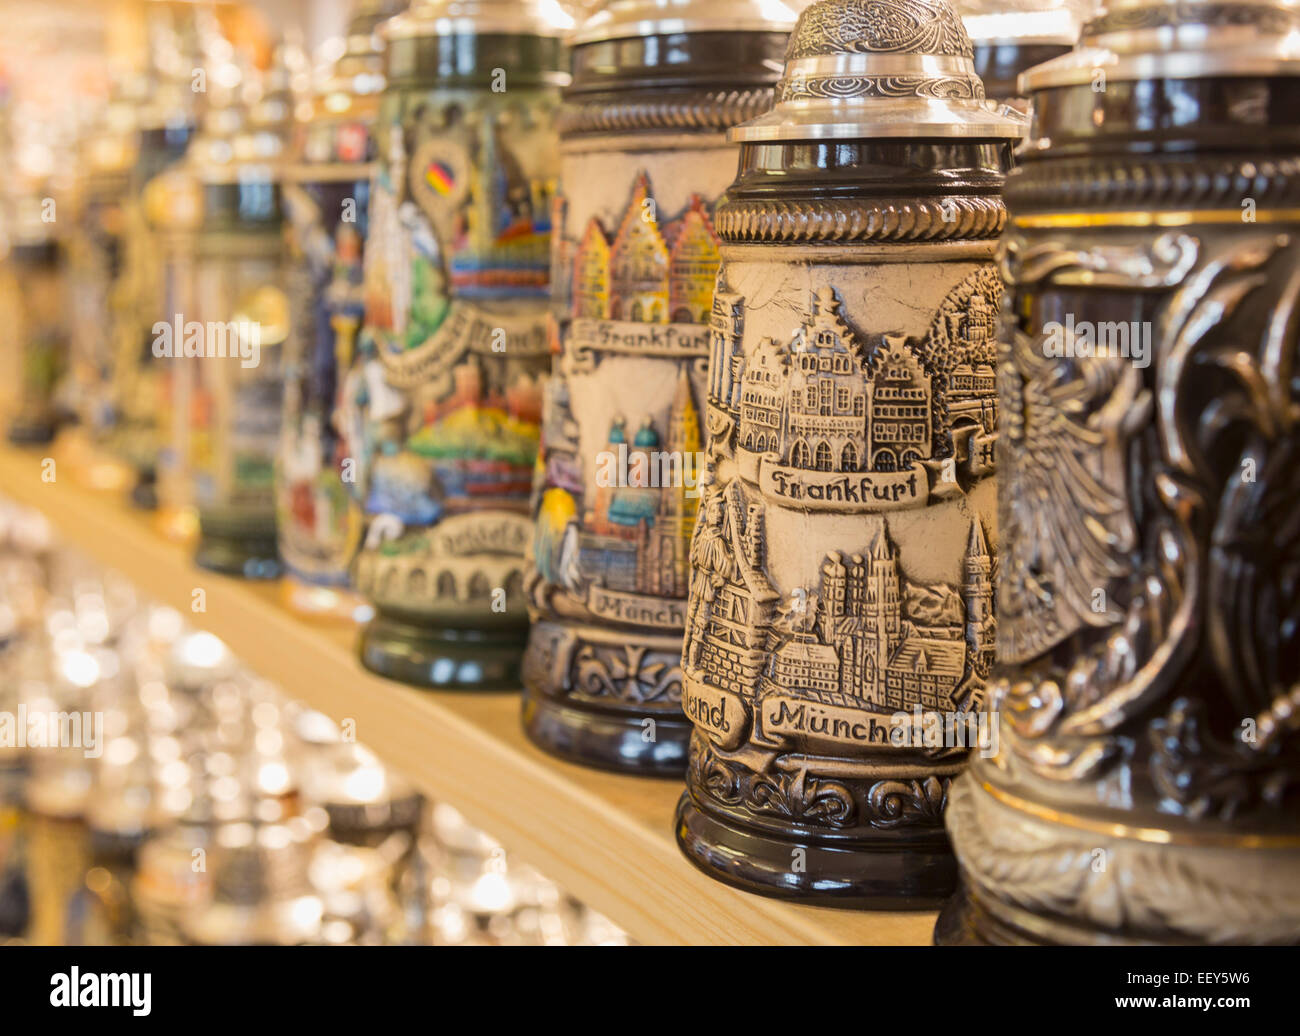 Row of German beer stein glasses or tankards on a shelf in a shop in Regensburg, Germany - Stock Image